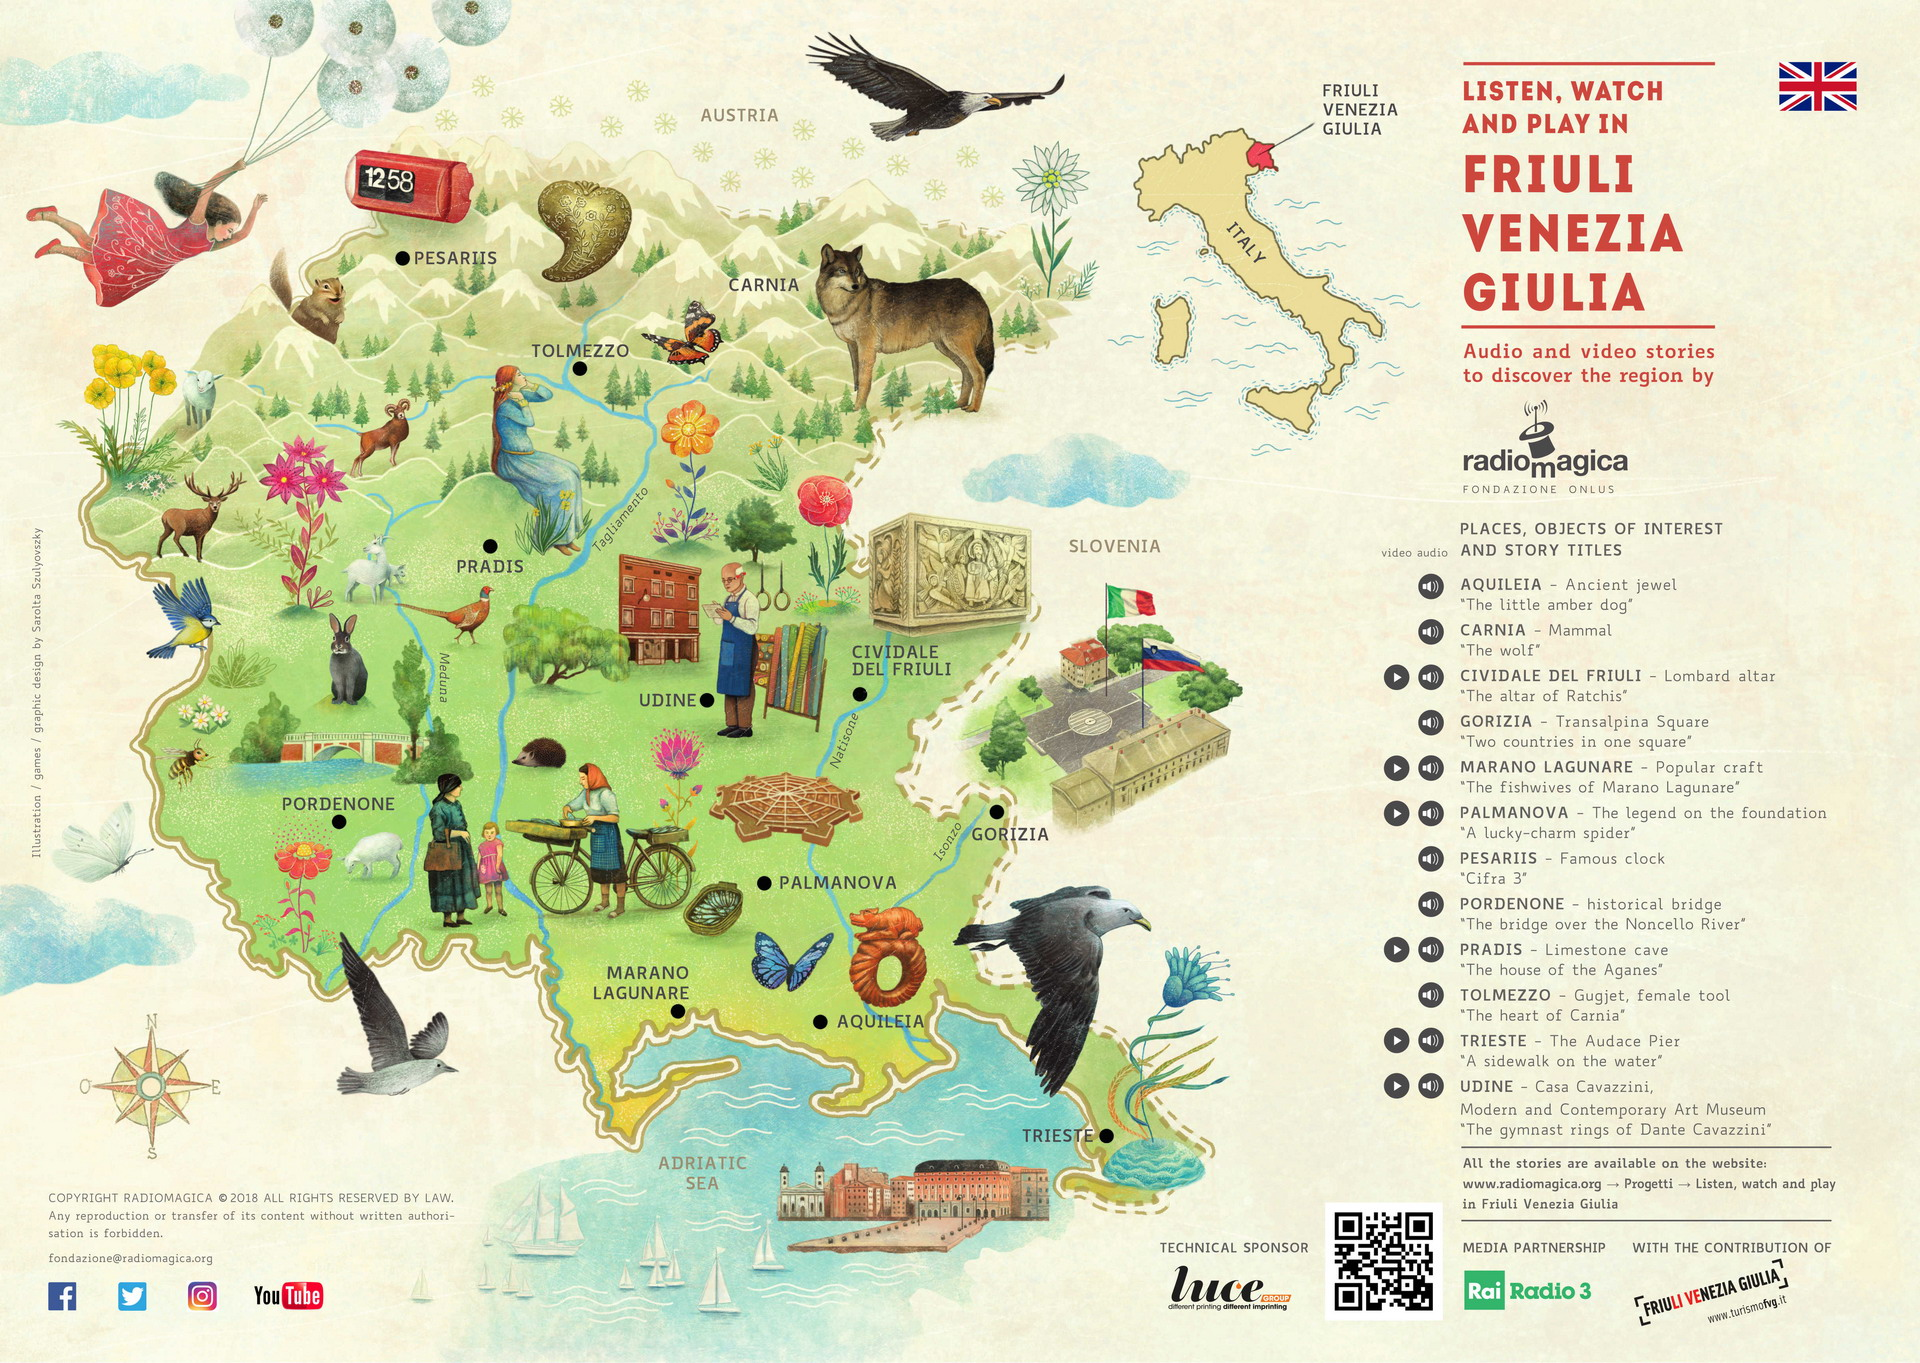 Listen, watch and play in Friuli Venezia Giulia - front